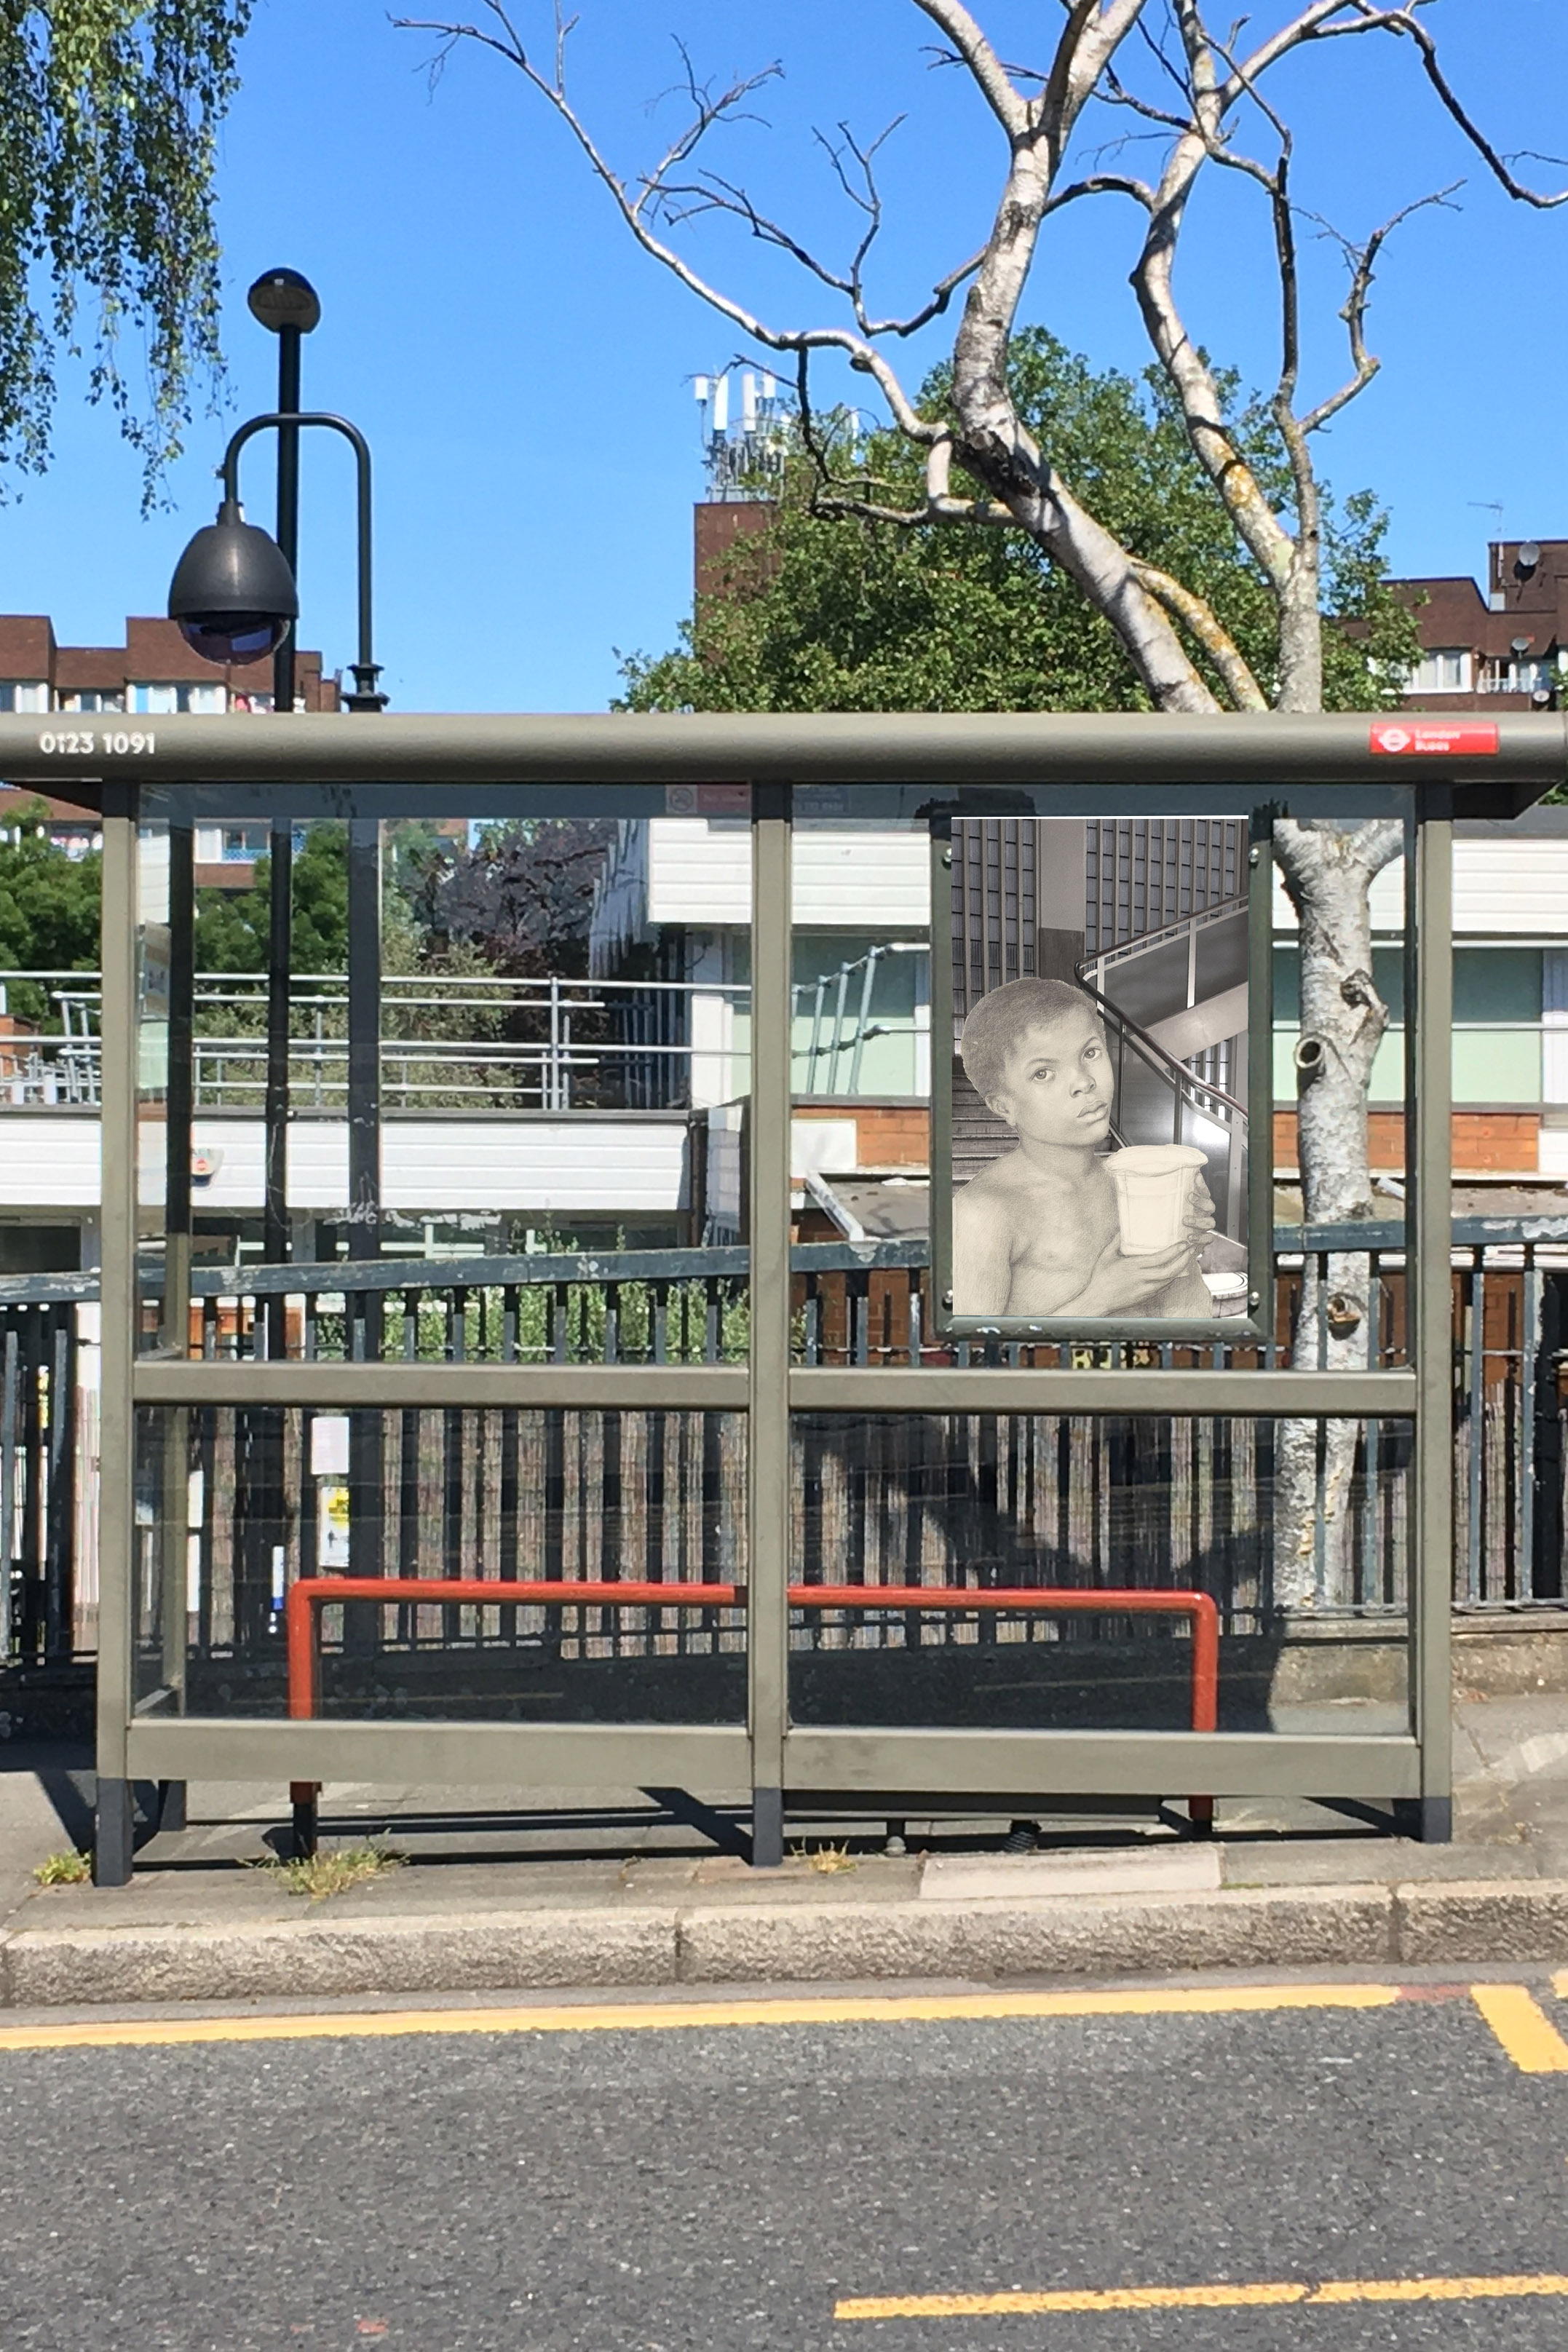 """Dante Gabriel Rossetti's """"The Beloved – Study of a Black Boy"""" (1865–66) in front of the stairway in the Piccadilly Waterstones (b&w) on the side of a bus stop on Oxestalls Road next to Deptford Park School, Deptford, London"""